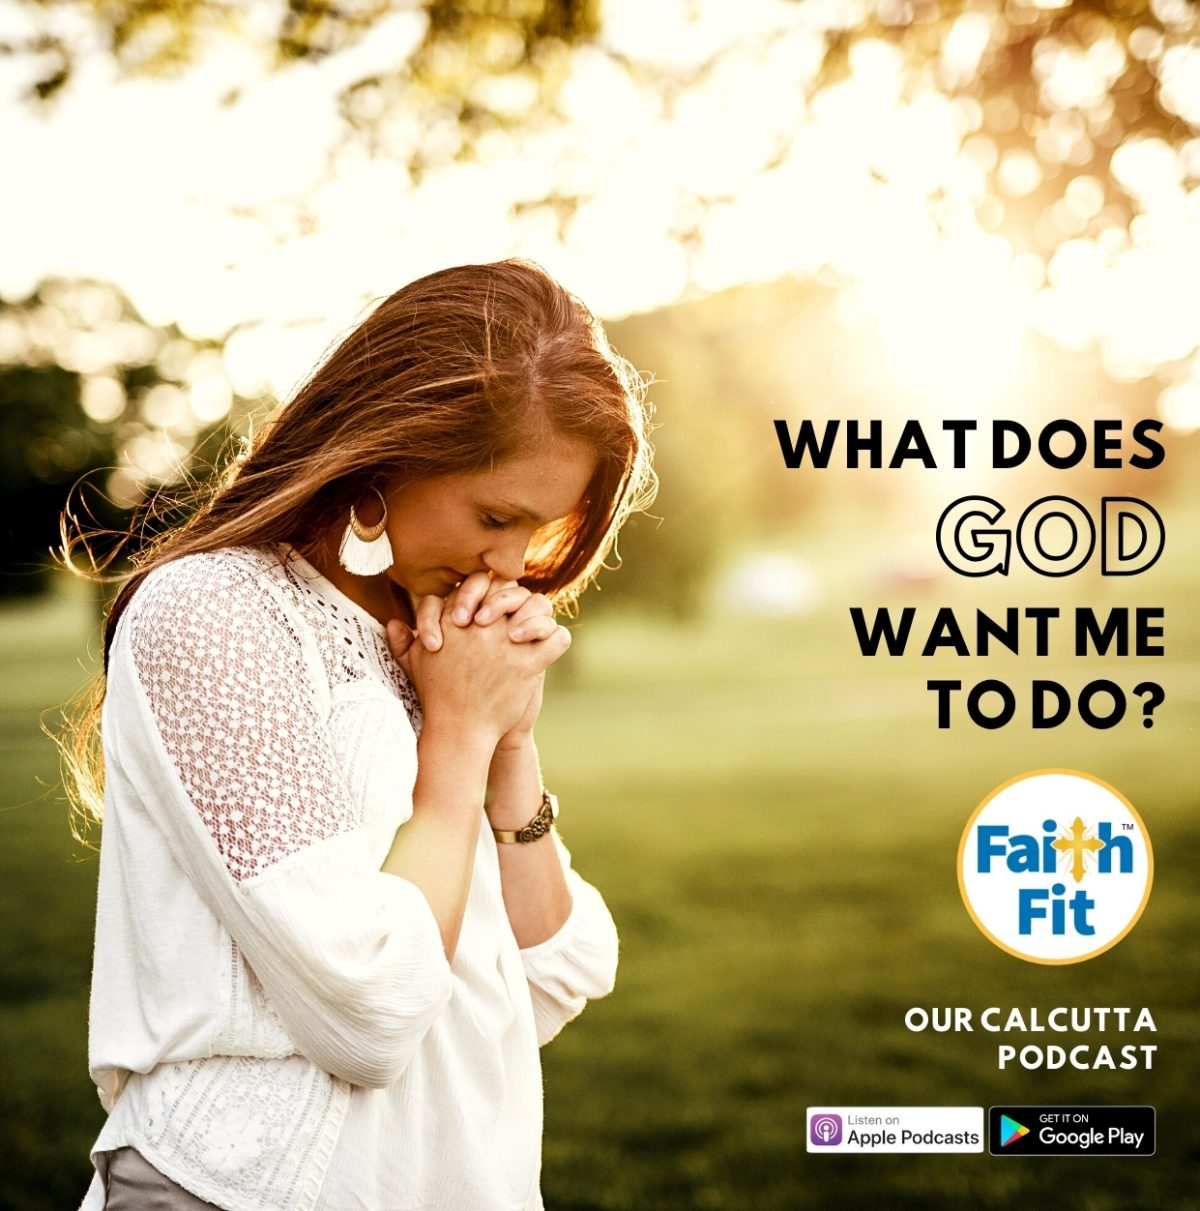 #3: What does God want me to do?